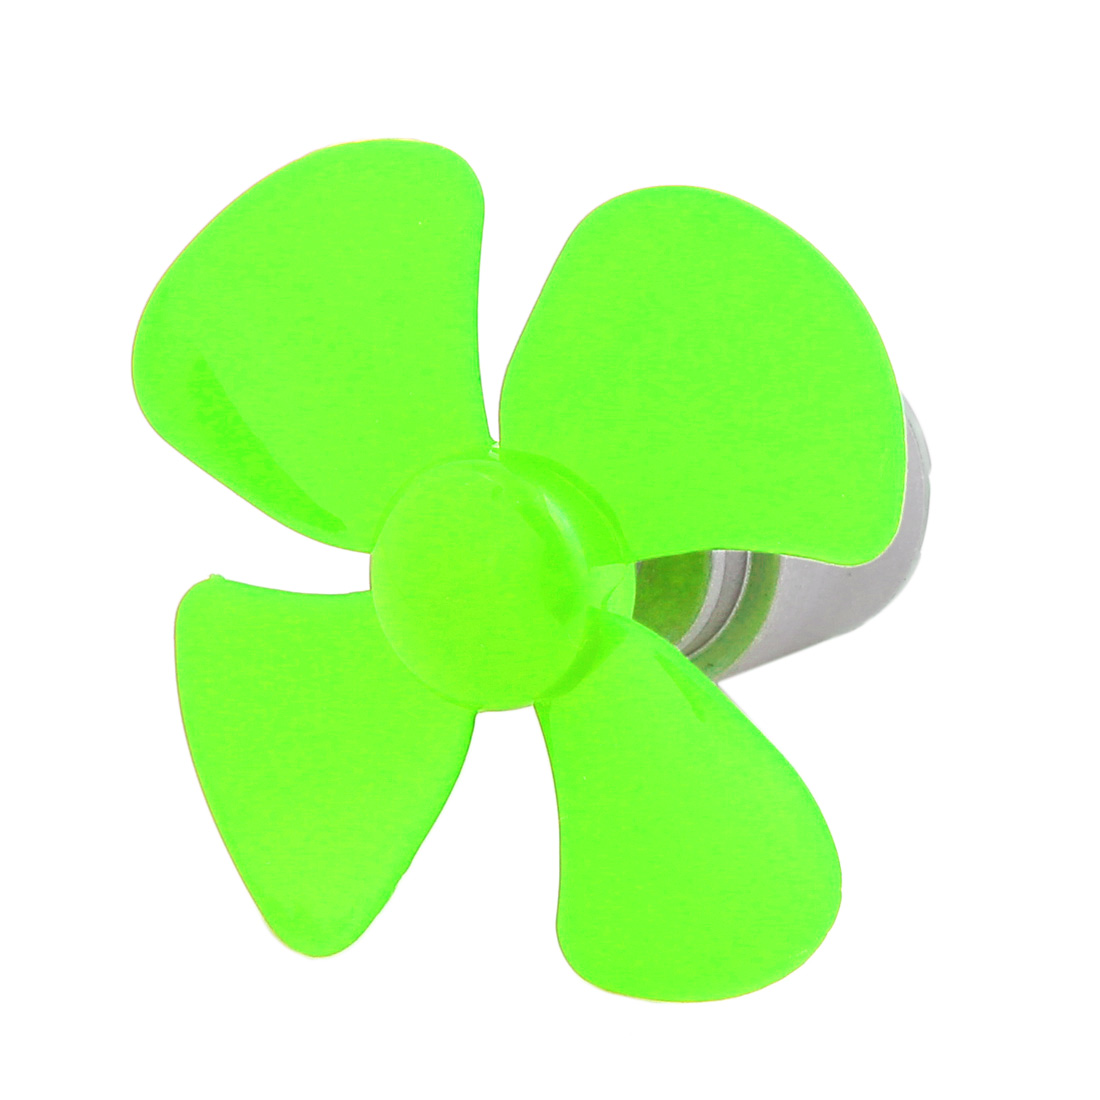 DC 3V 0.13A 17000RPM Strong Force Motor 4 Blades 56mm Green Propeller for RC Aircraft